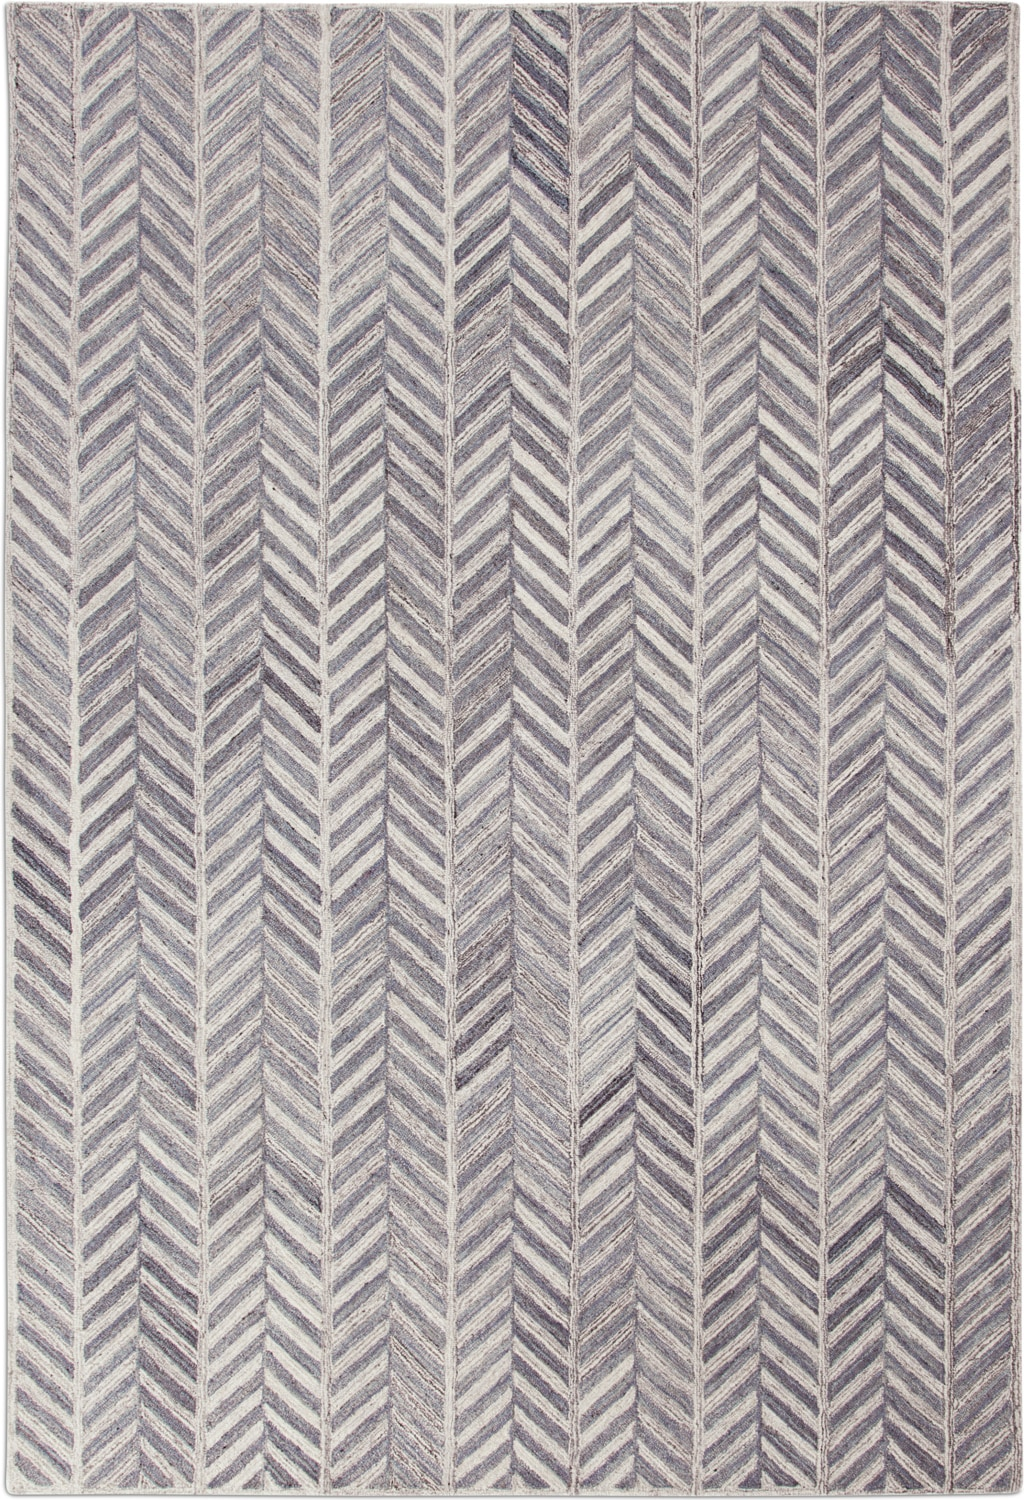 Rugs - Everest Area Rug - Ivory/Gray